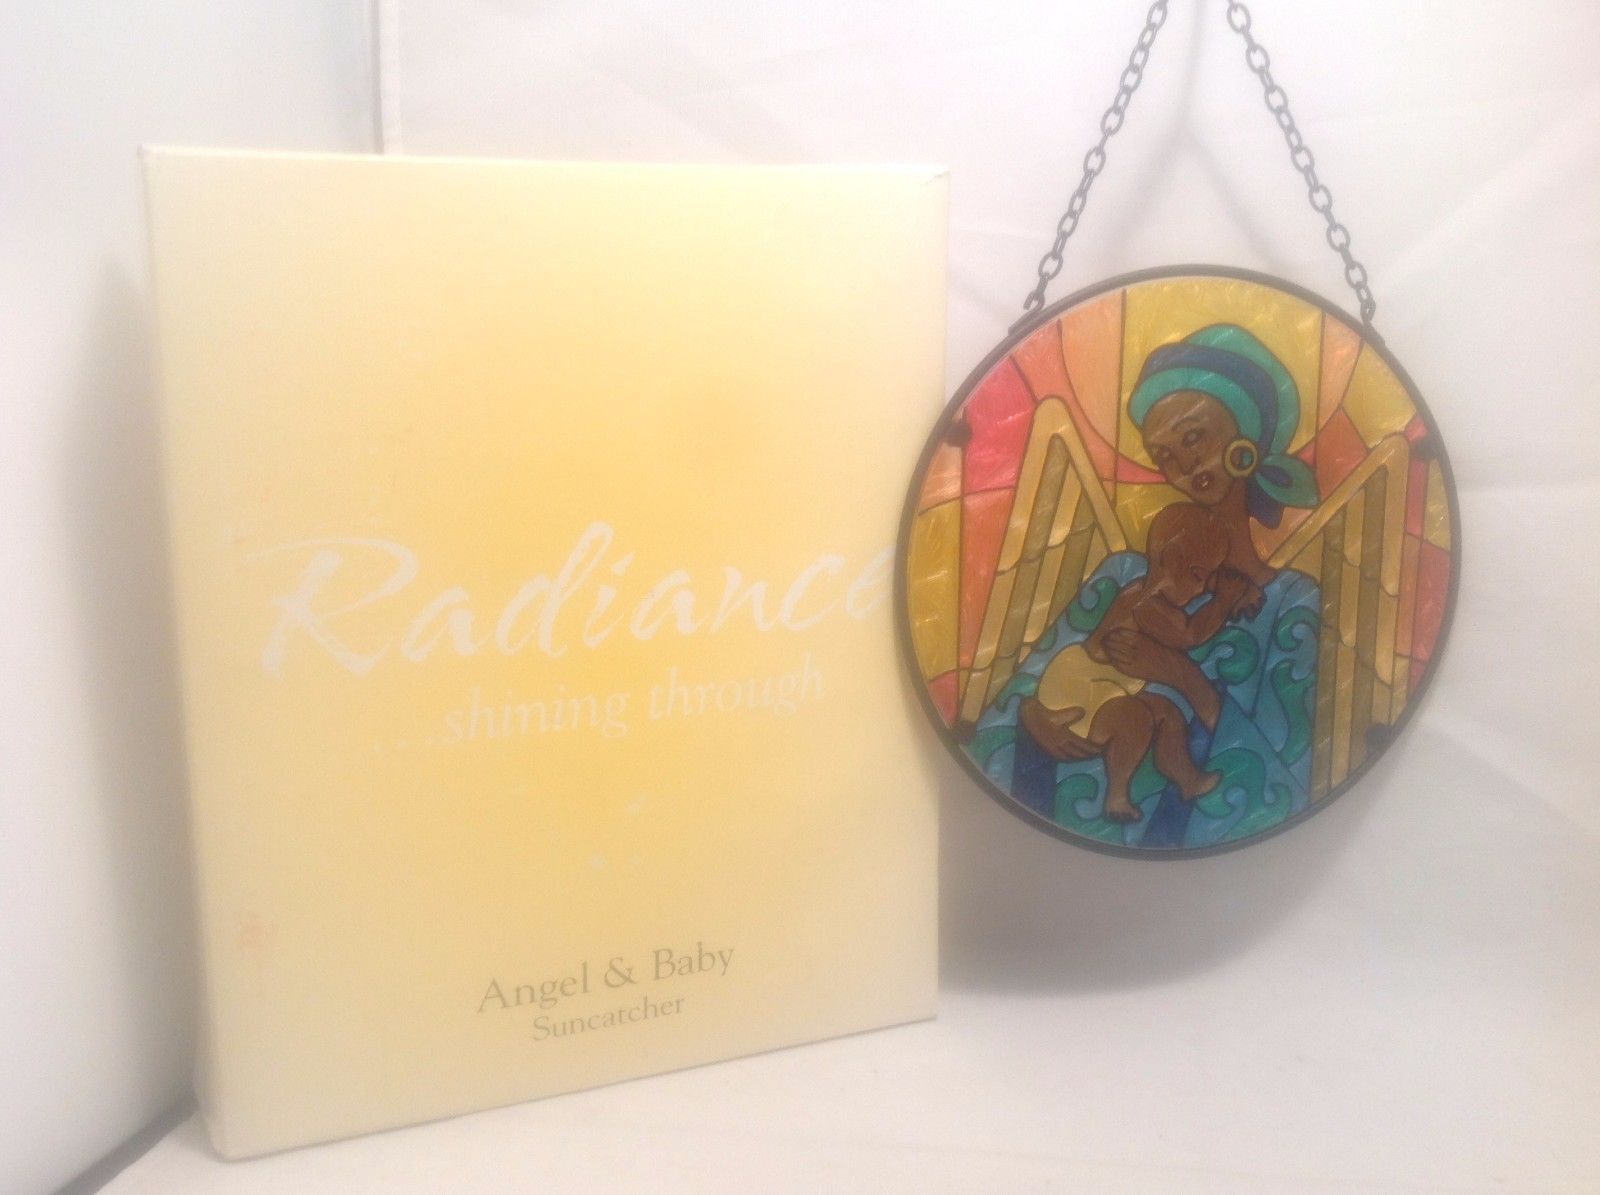 "Never Used In Box Radiance Suncatcher Angel & Baby 6 1/2"" Diameter 3"" Chain"